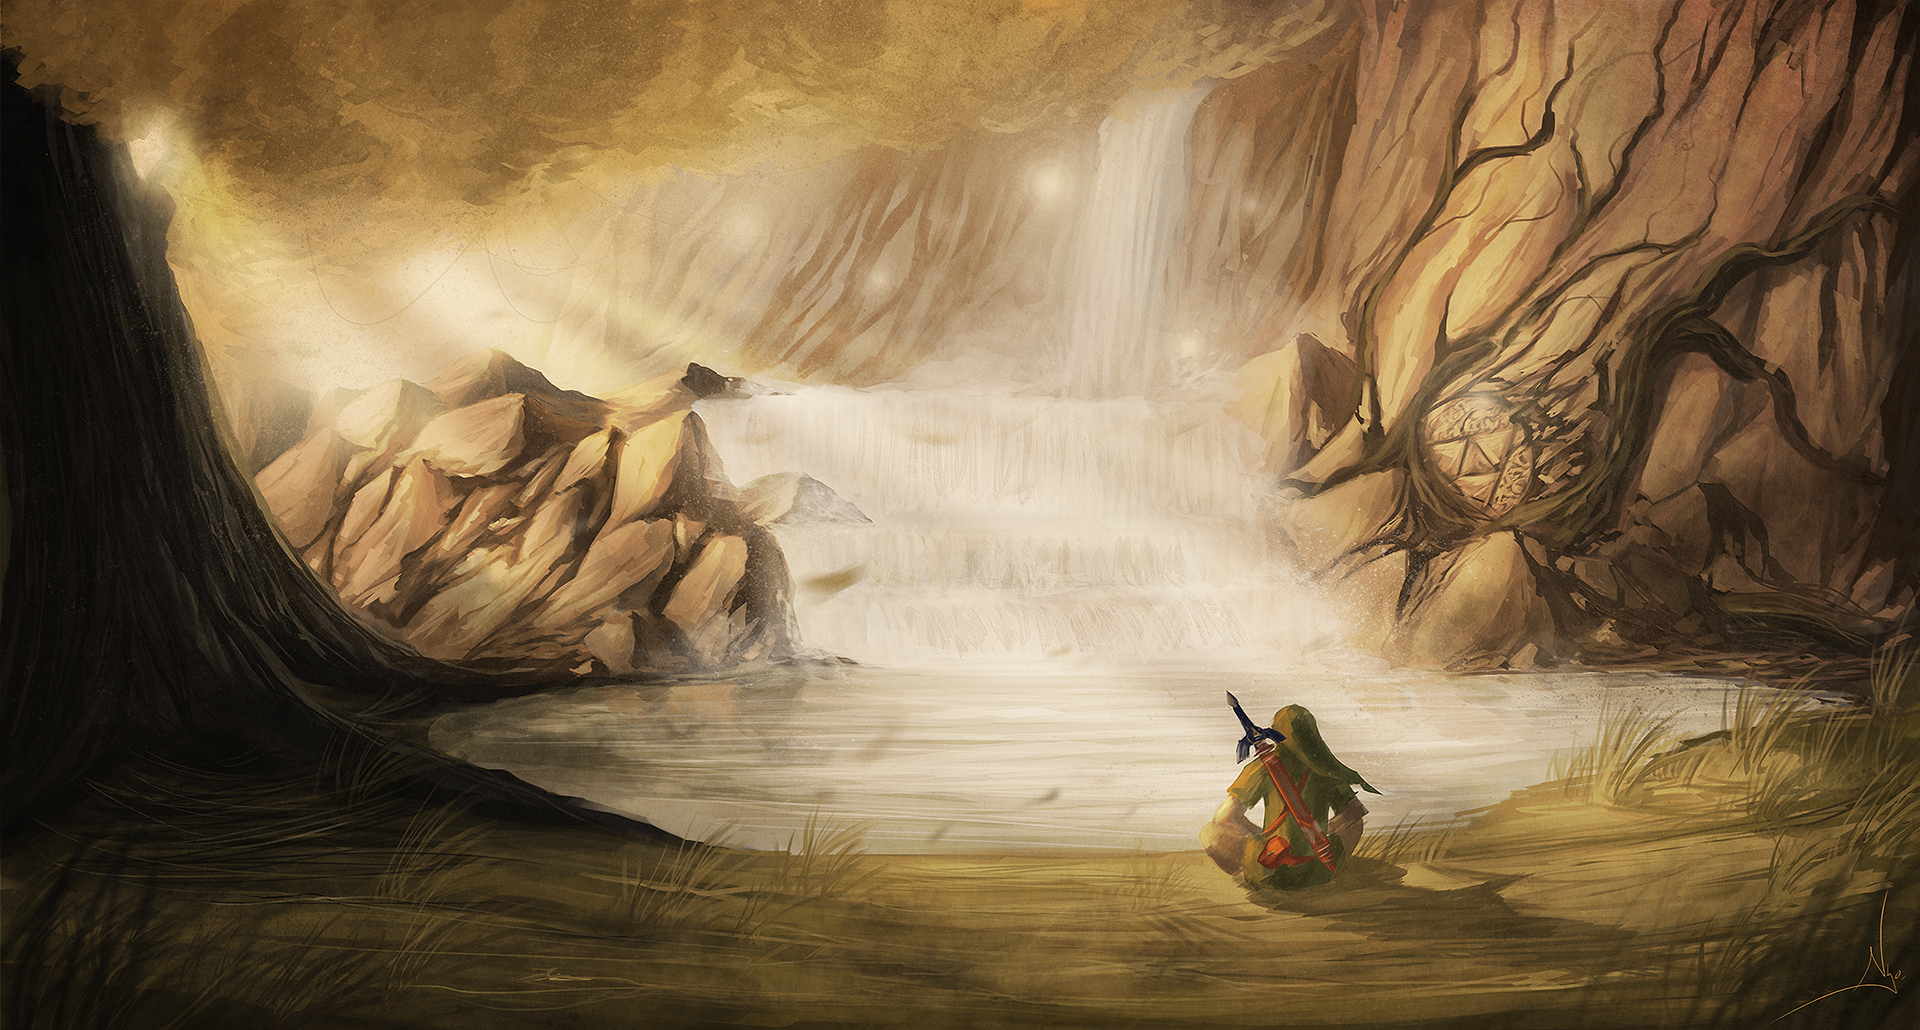 Fond dcran du jeu The Legend of Zelda Twilight Princess 1920x1030